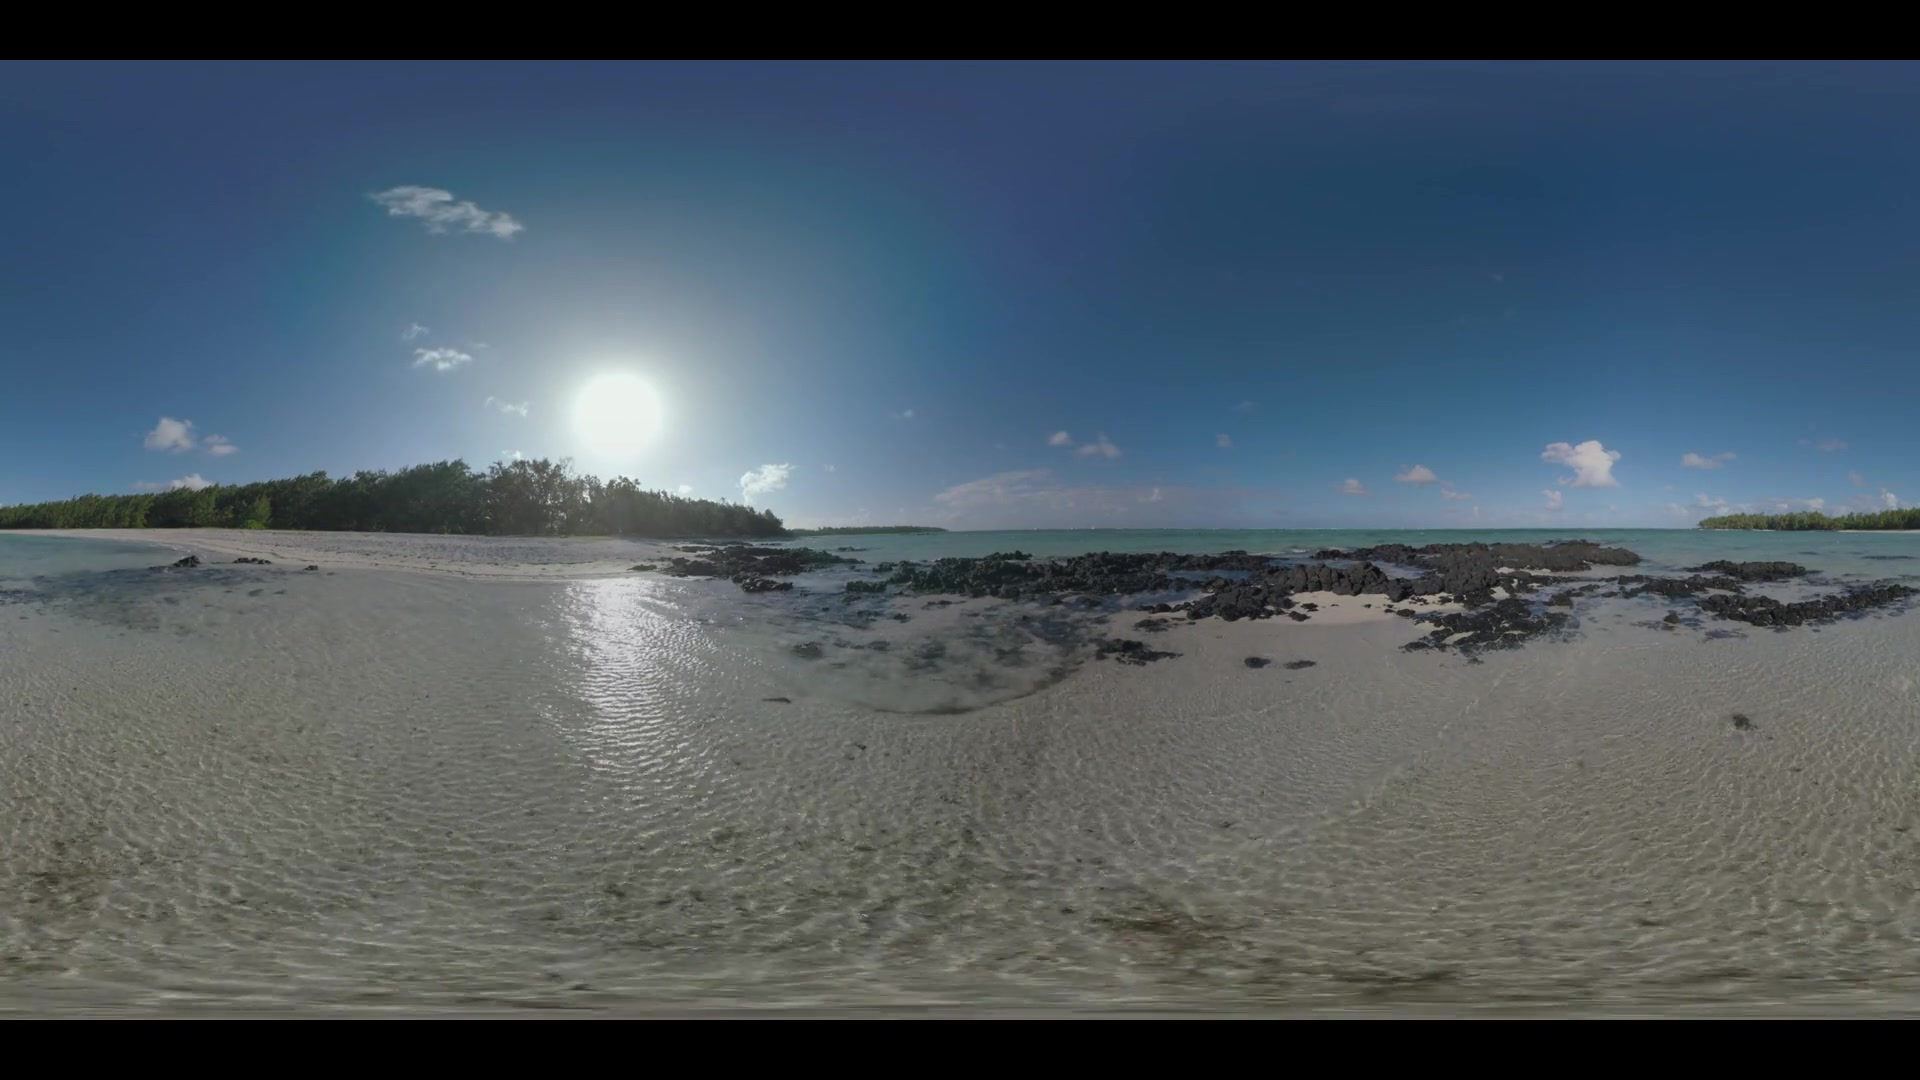 360 VR video. Mauritius waterscape. Shallow waters of the ocean and black volcanic rocks on the coast with green trees alongside